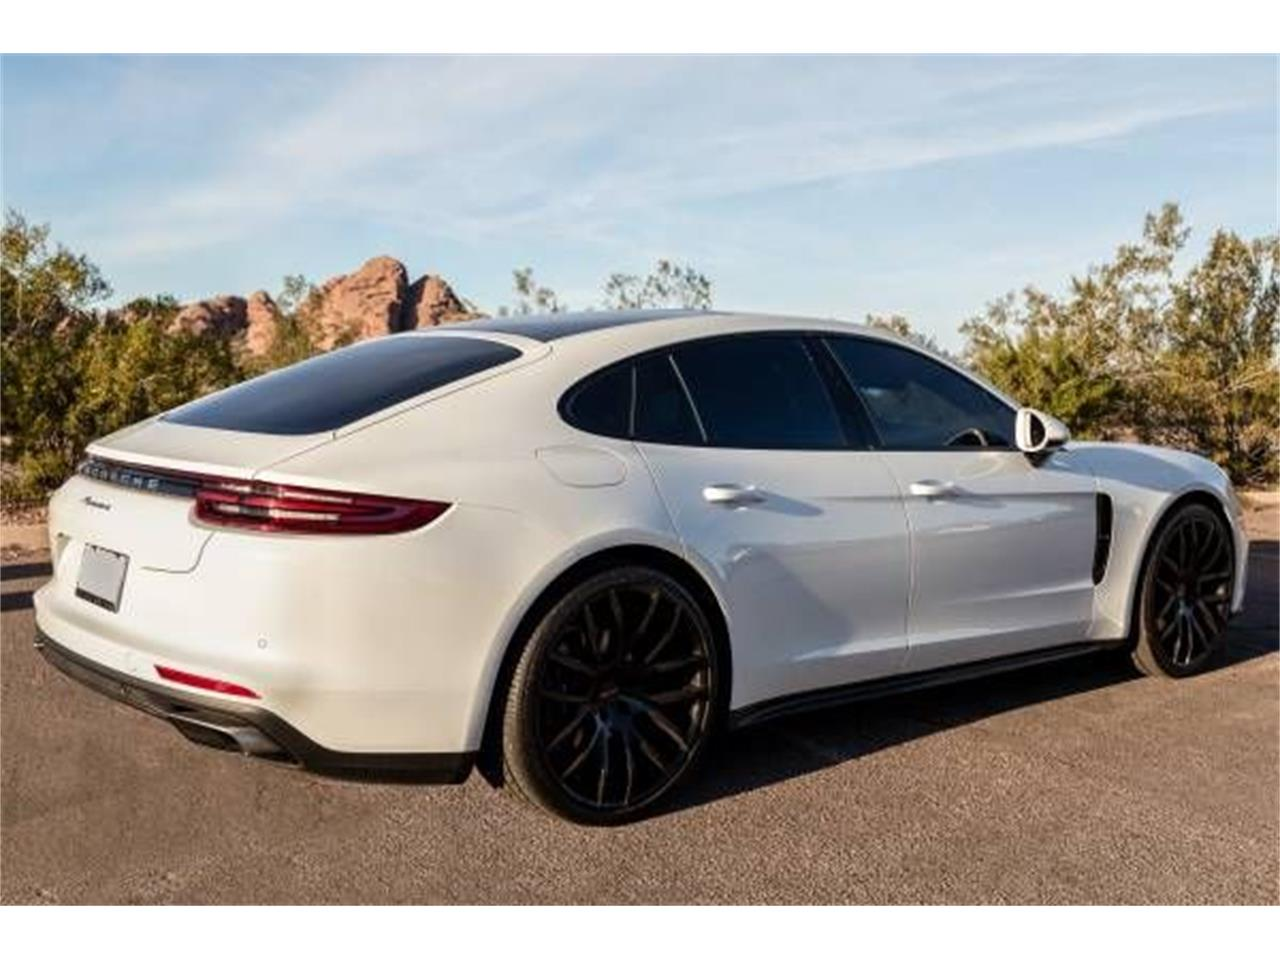 2018 Porsche Panamera (CC-1275678) for sale in Cadillac, Michigan